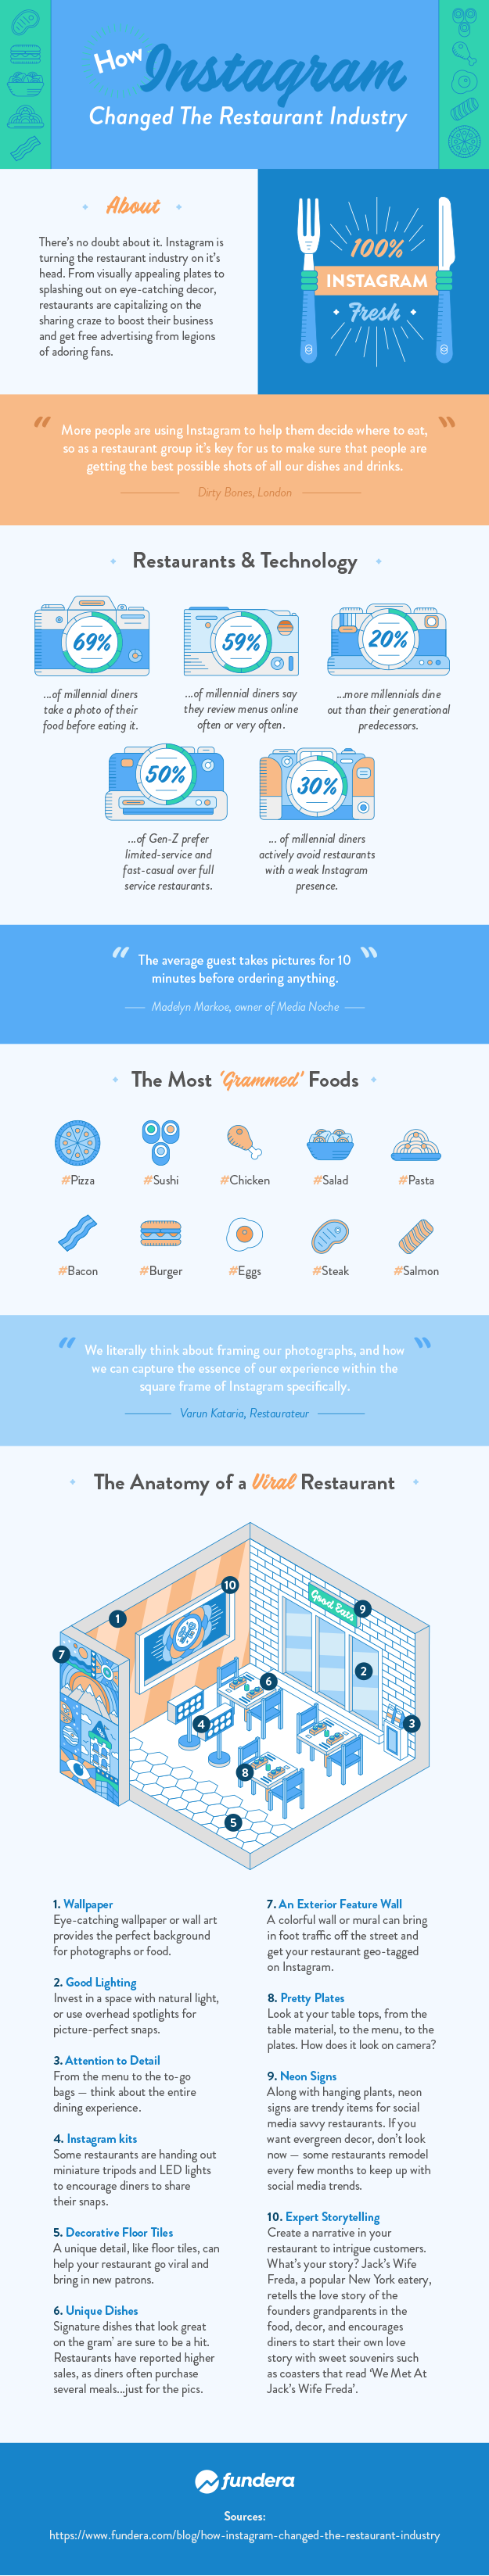 How Instagram Changed The Restaurant Industry #infographic